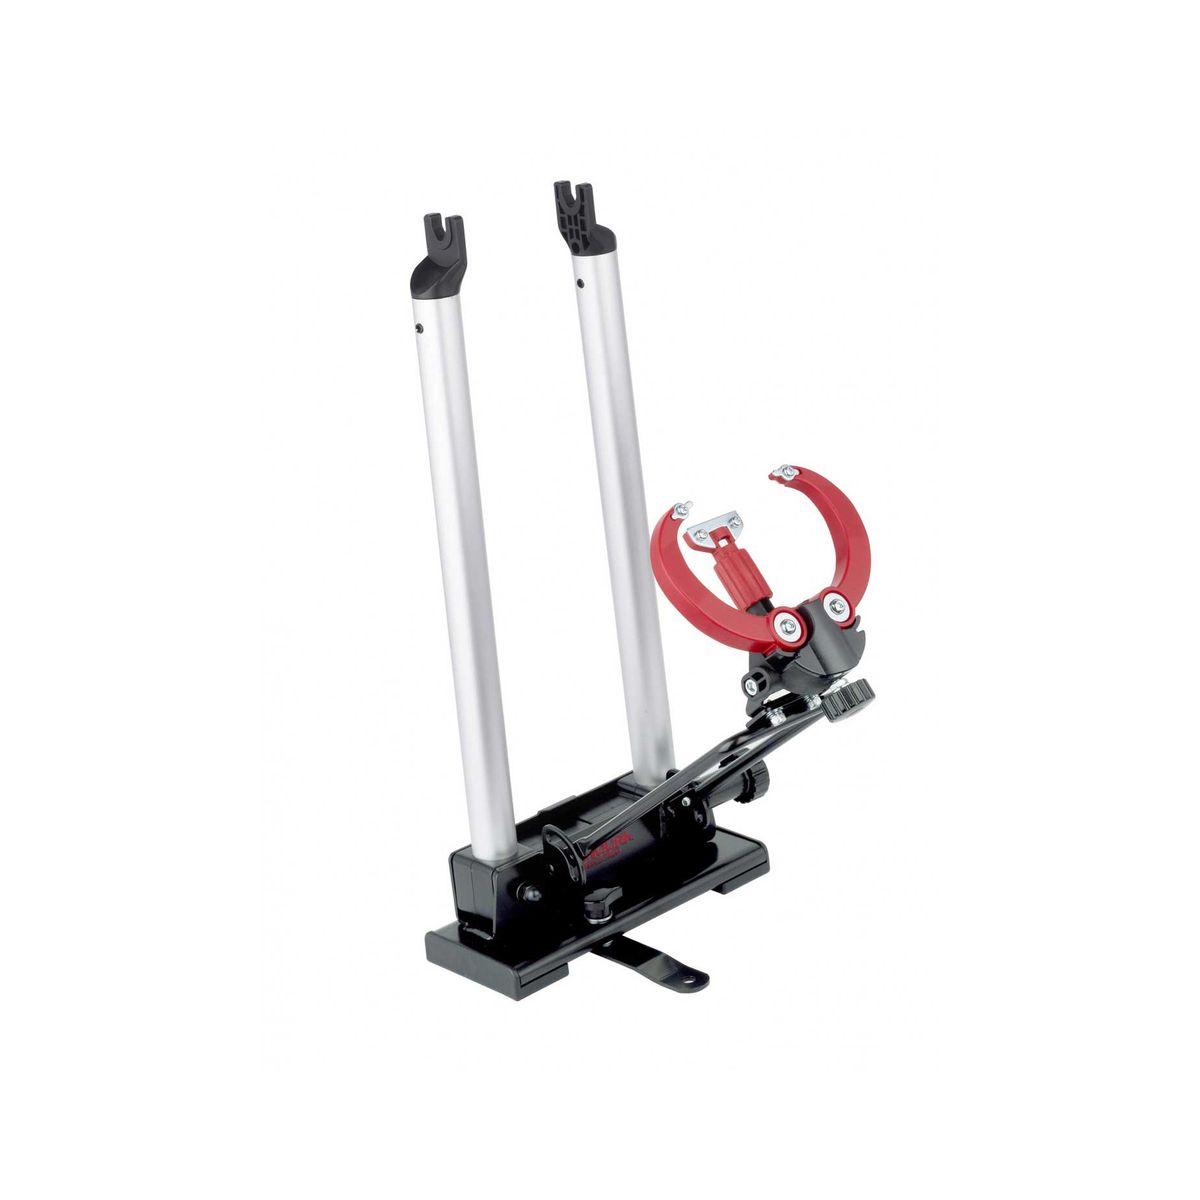 FT-1 truing stand